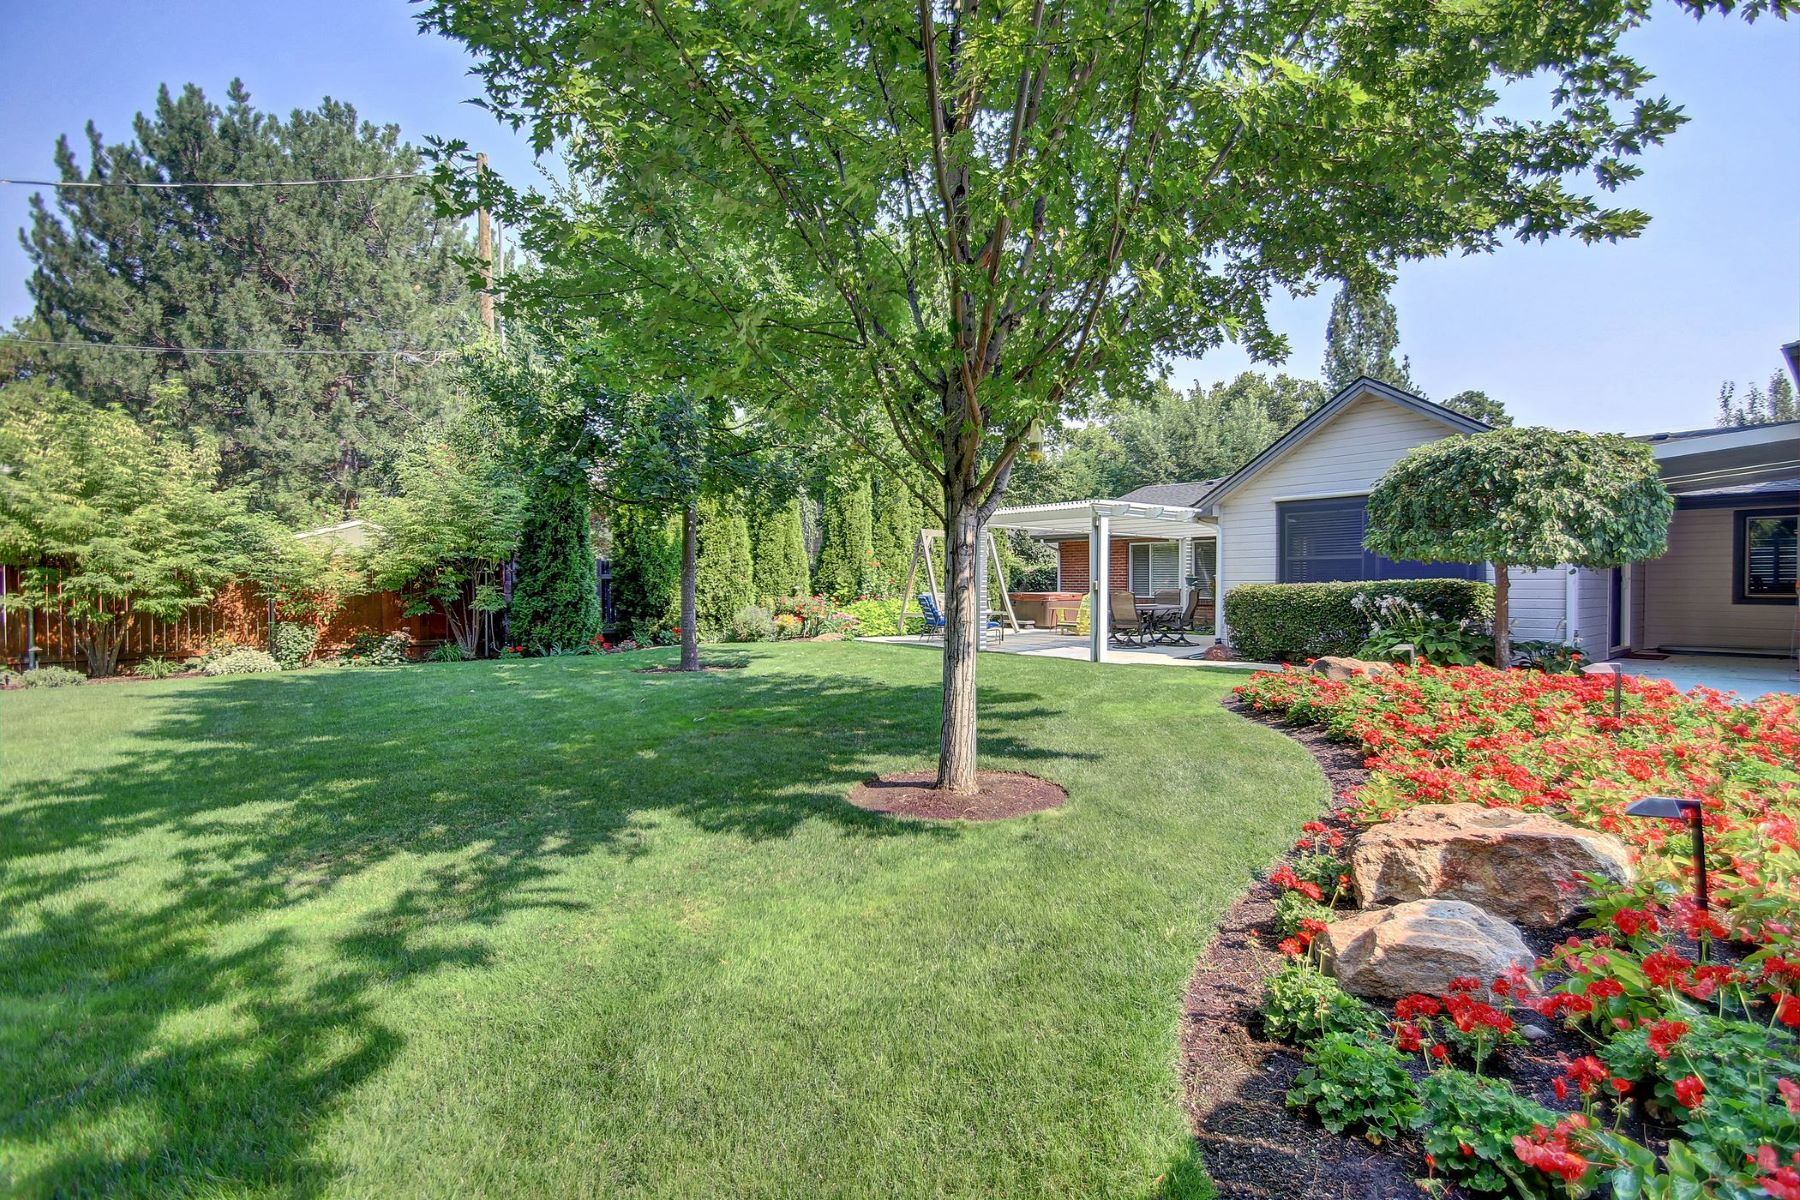 Additional photo for property listing at 3227 Crescent Rim Dr., Boise 3227 W Crescent Rim Dr Boise, Idaho 83706